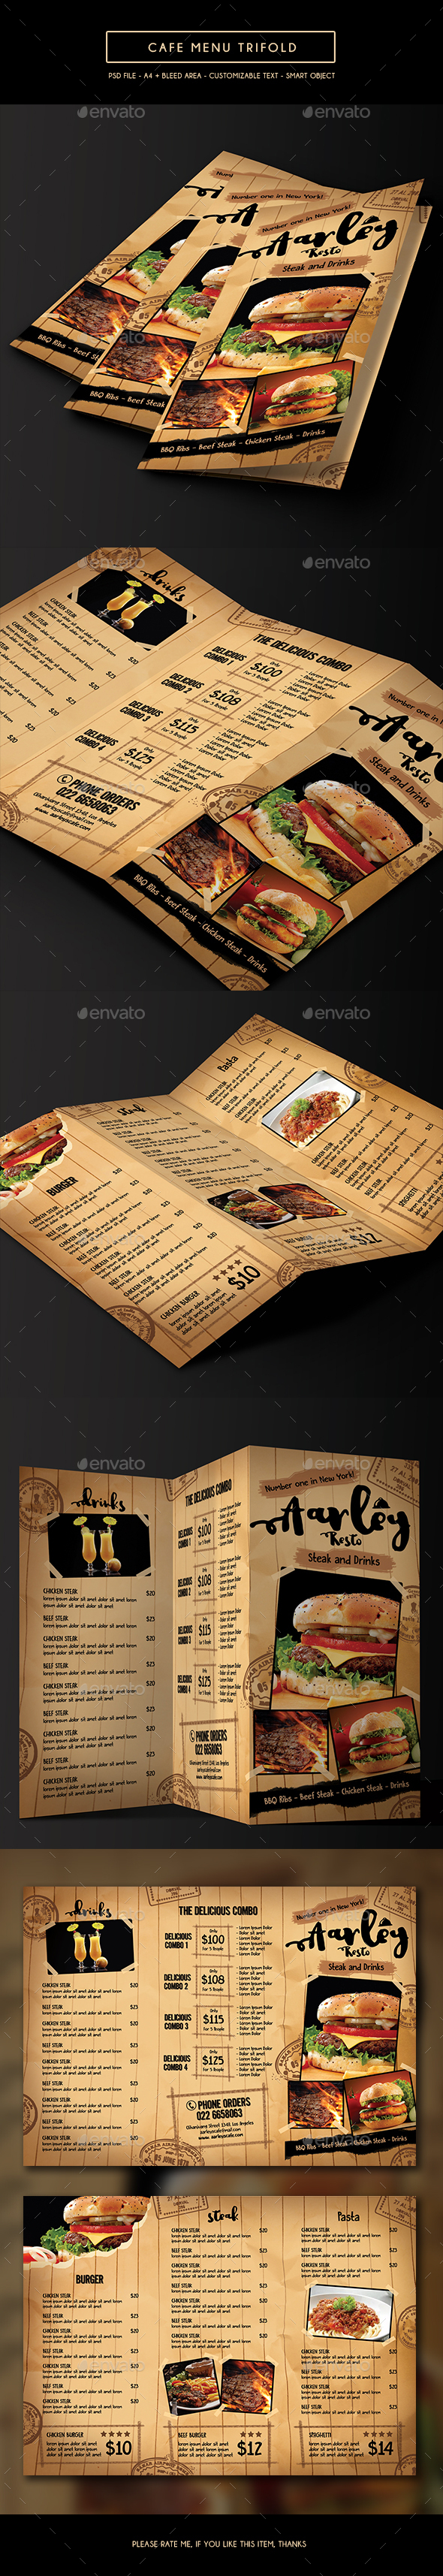 Cafe Menu Trifold